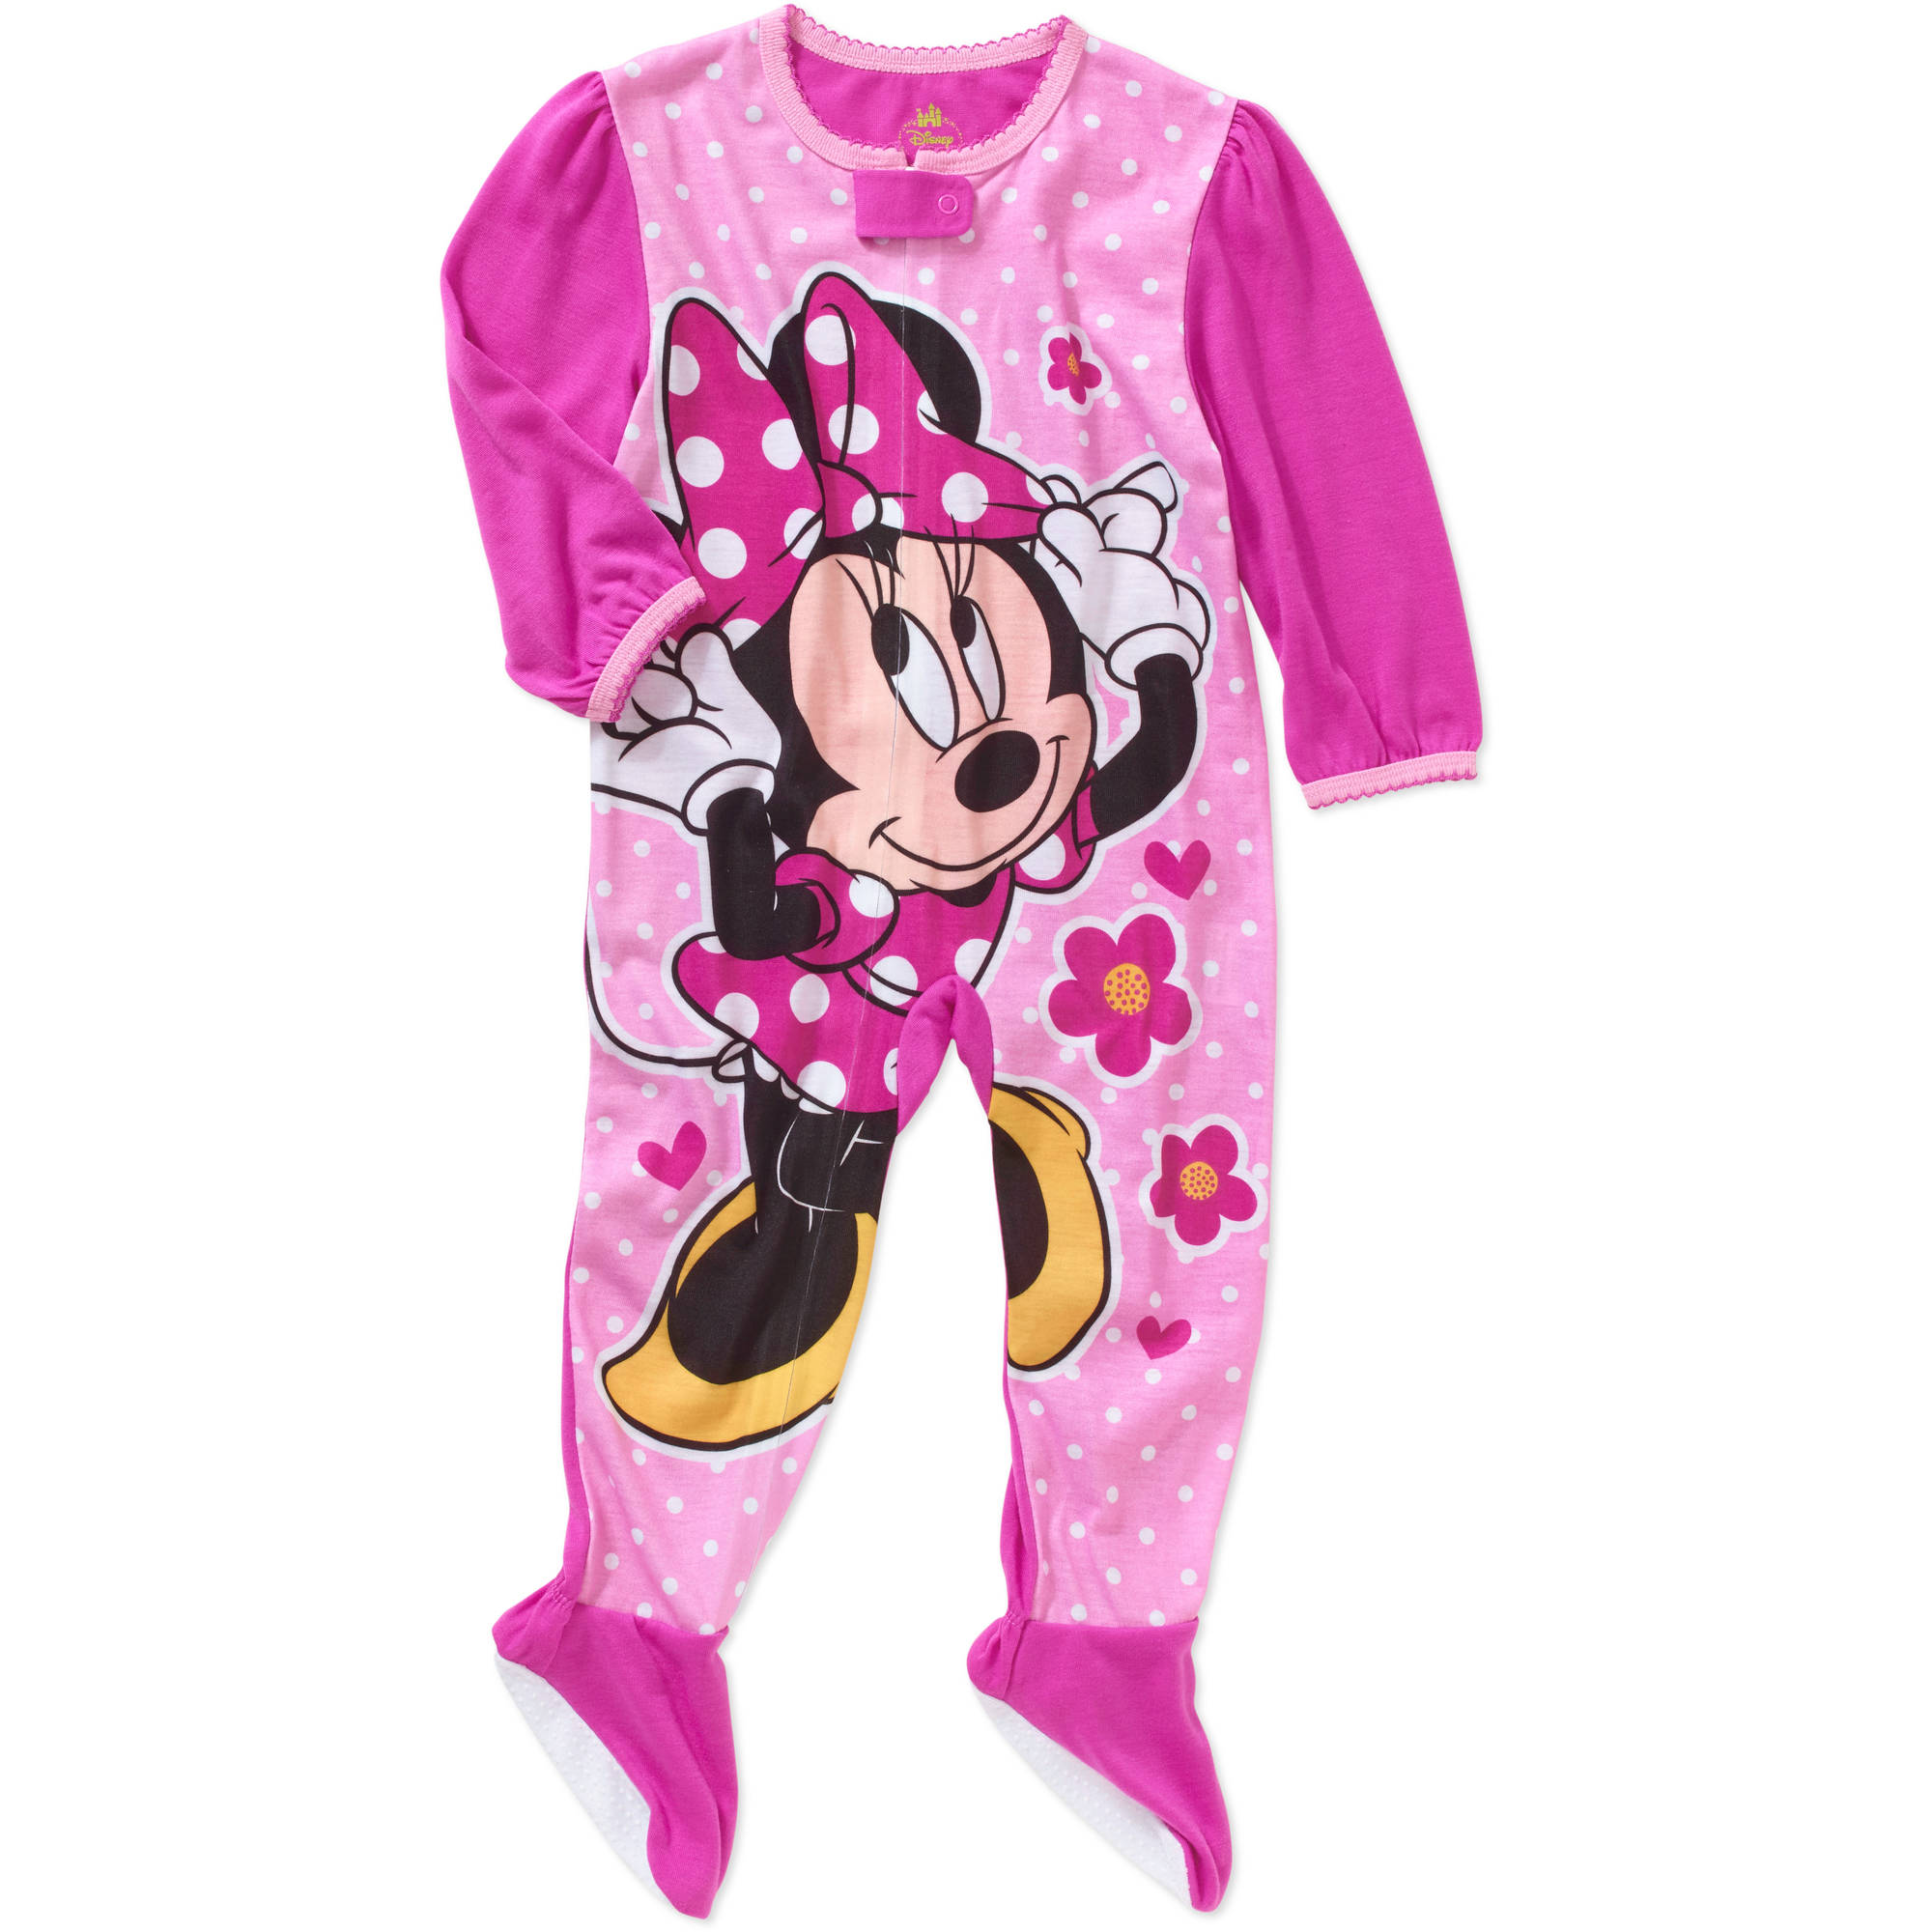 Minnie Mouse Newborn Infant Baby Girl Footed Blanket